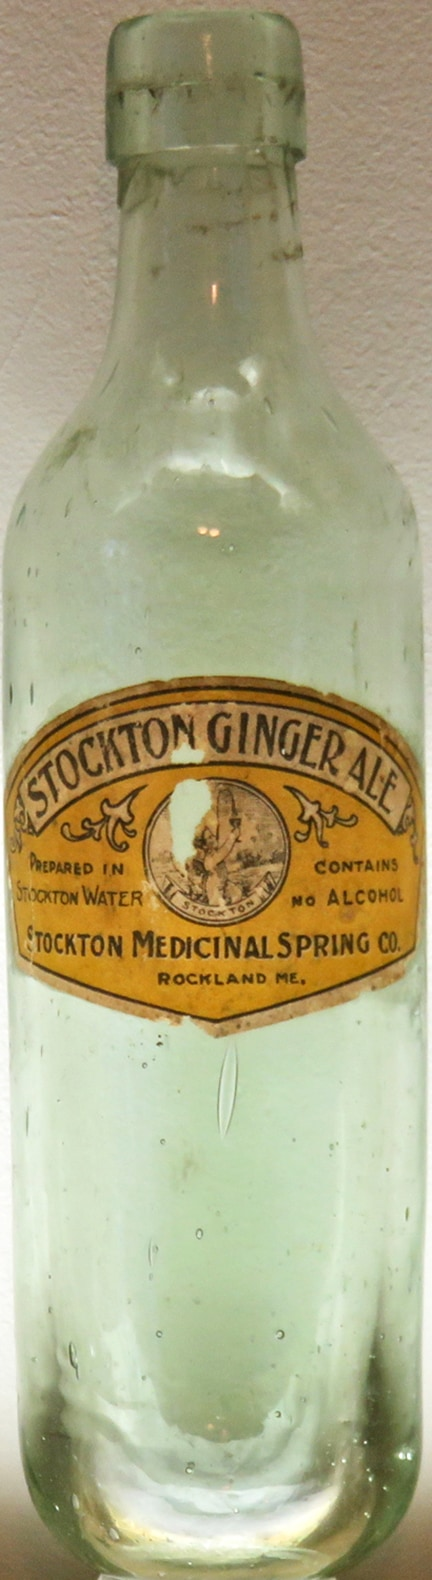 StocktonGingerAle